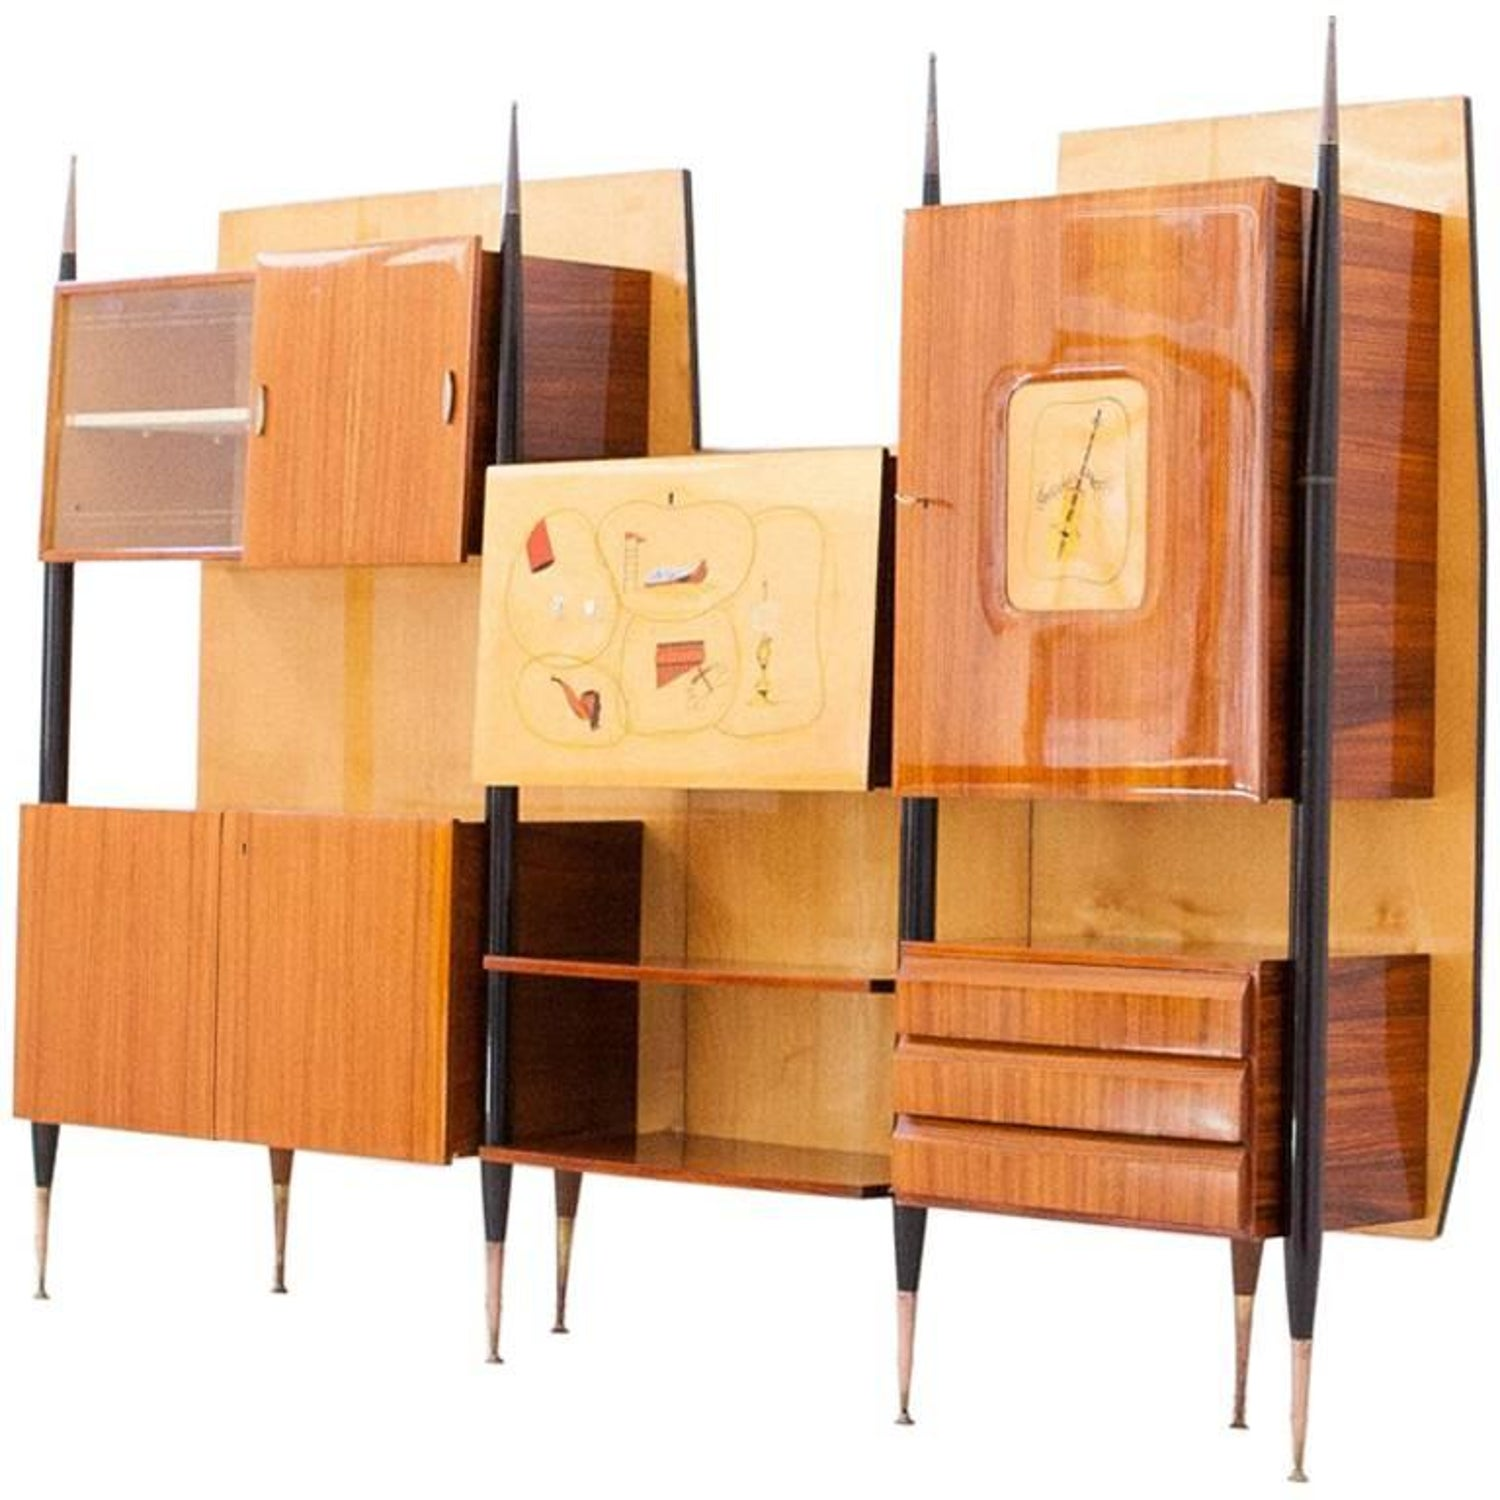 Italian Mid Century Modern Wall Unit With Bar 1950s For At 1stdibs